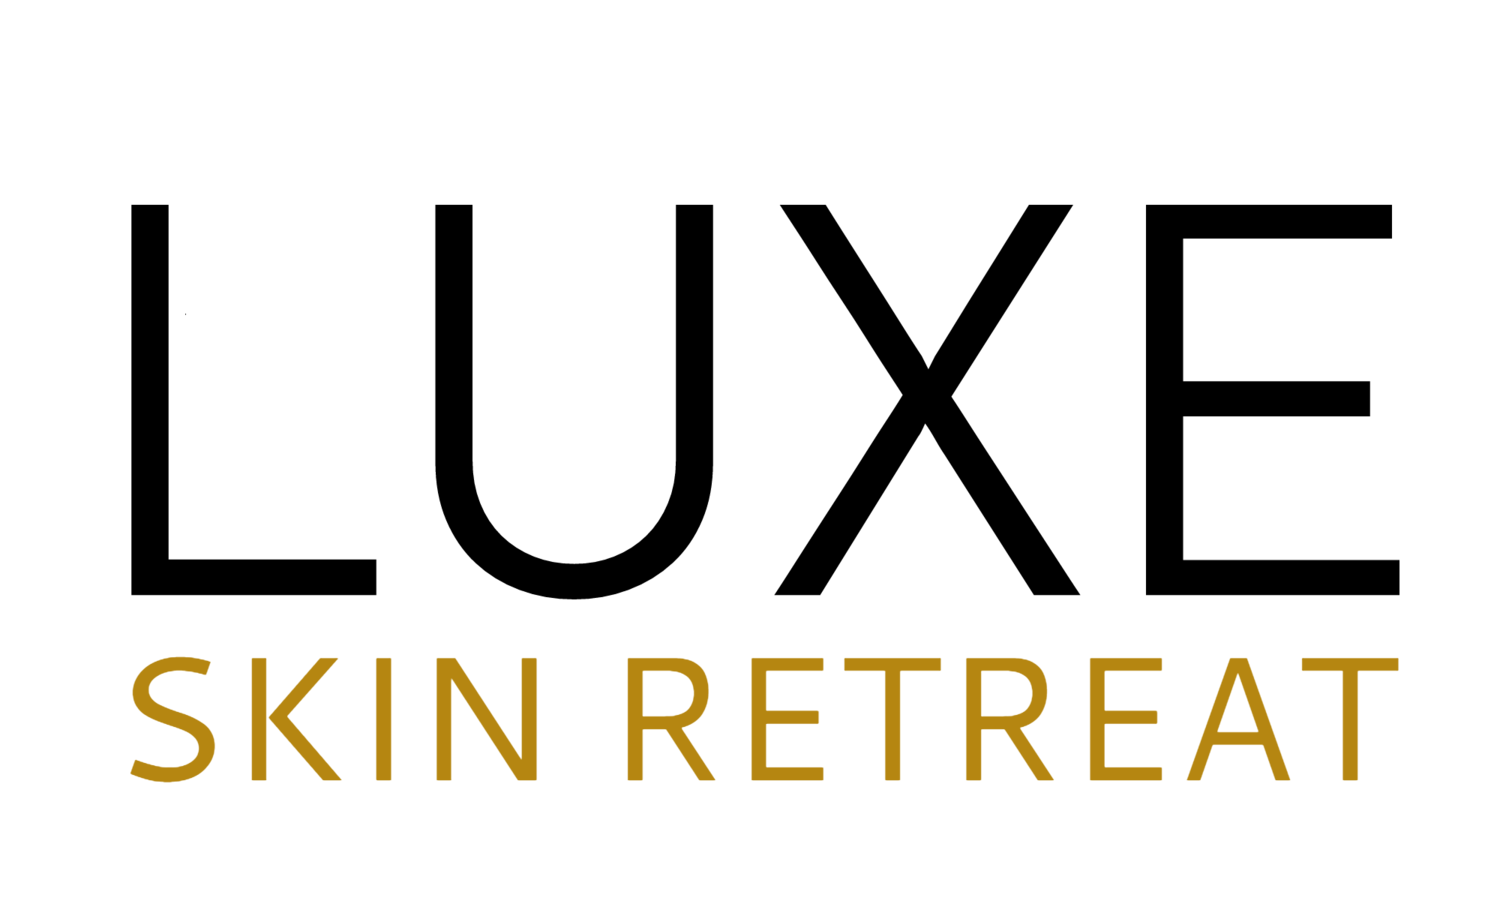 Luxe Skin Retreat - Facials, Peels, and Body Treatments in San Diego